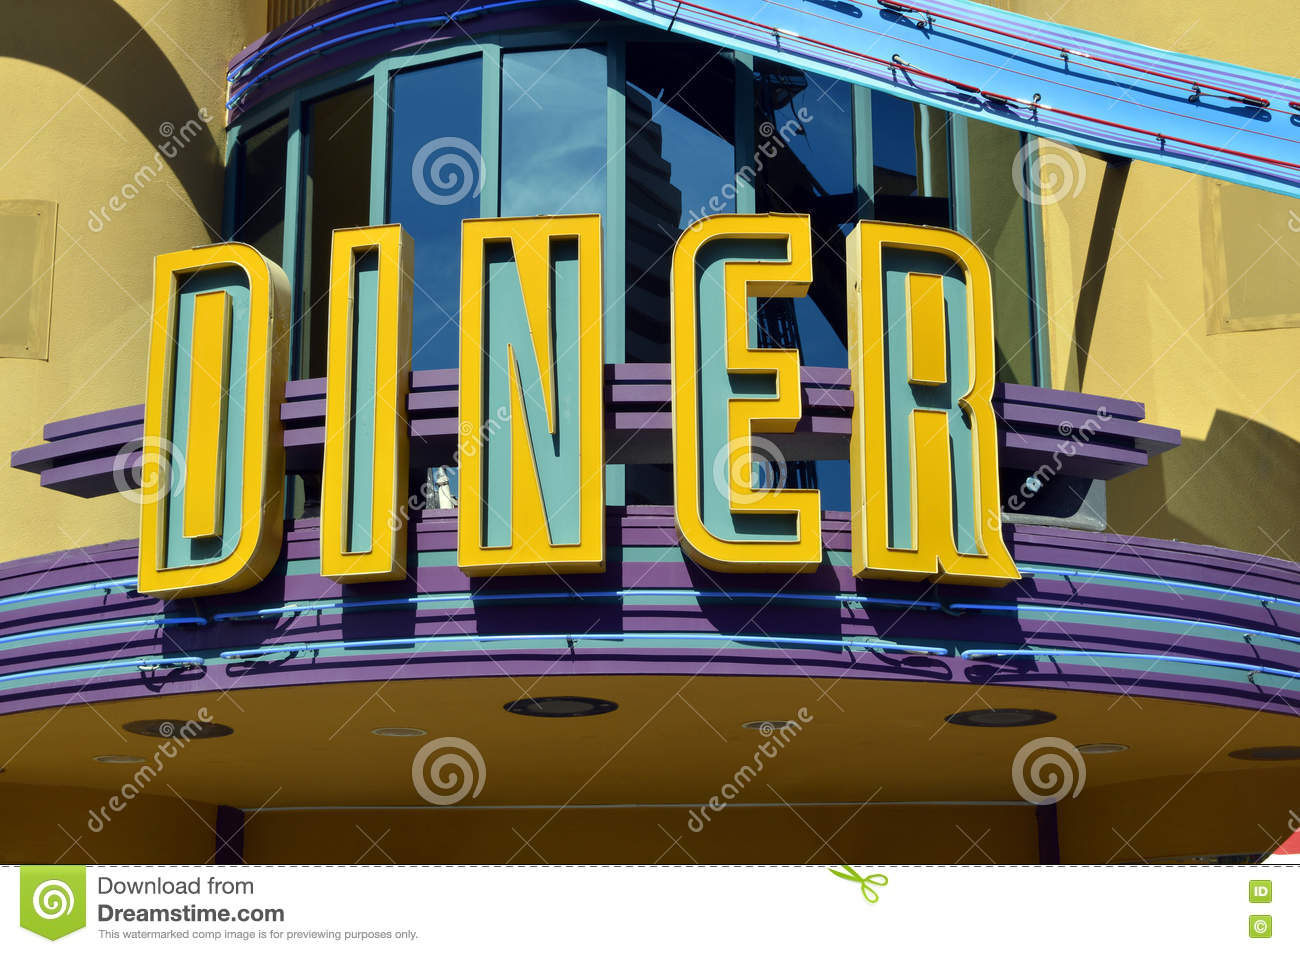 American Diner sign stock photo. Image of front, florida - 80760434